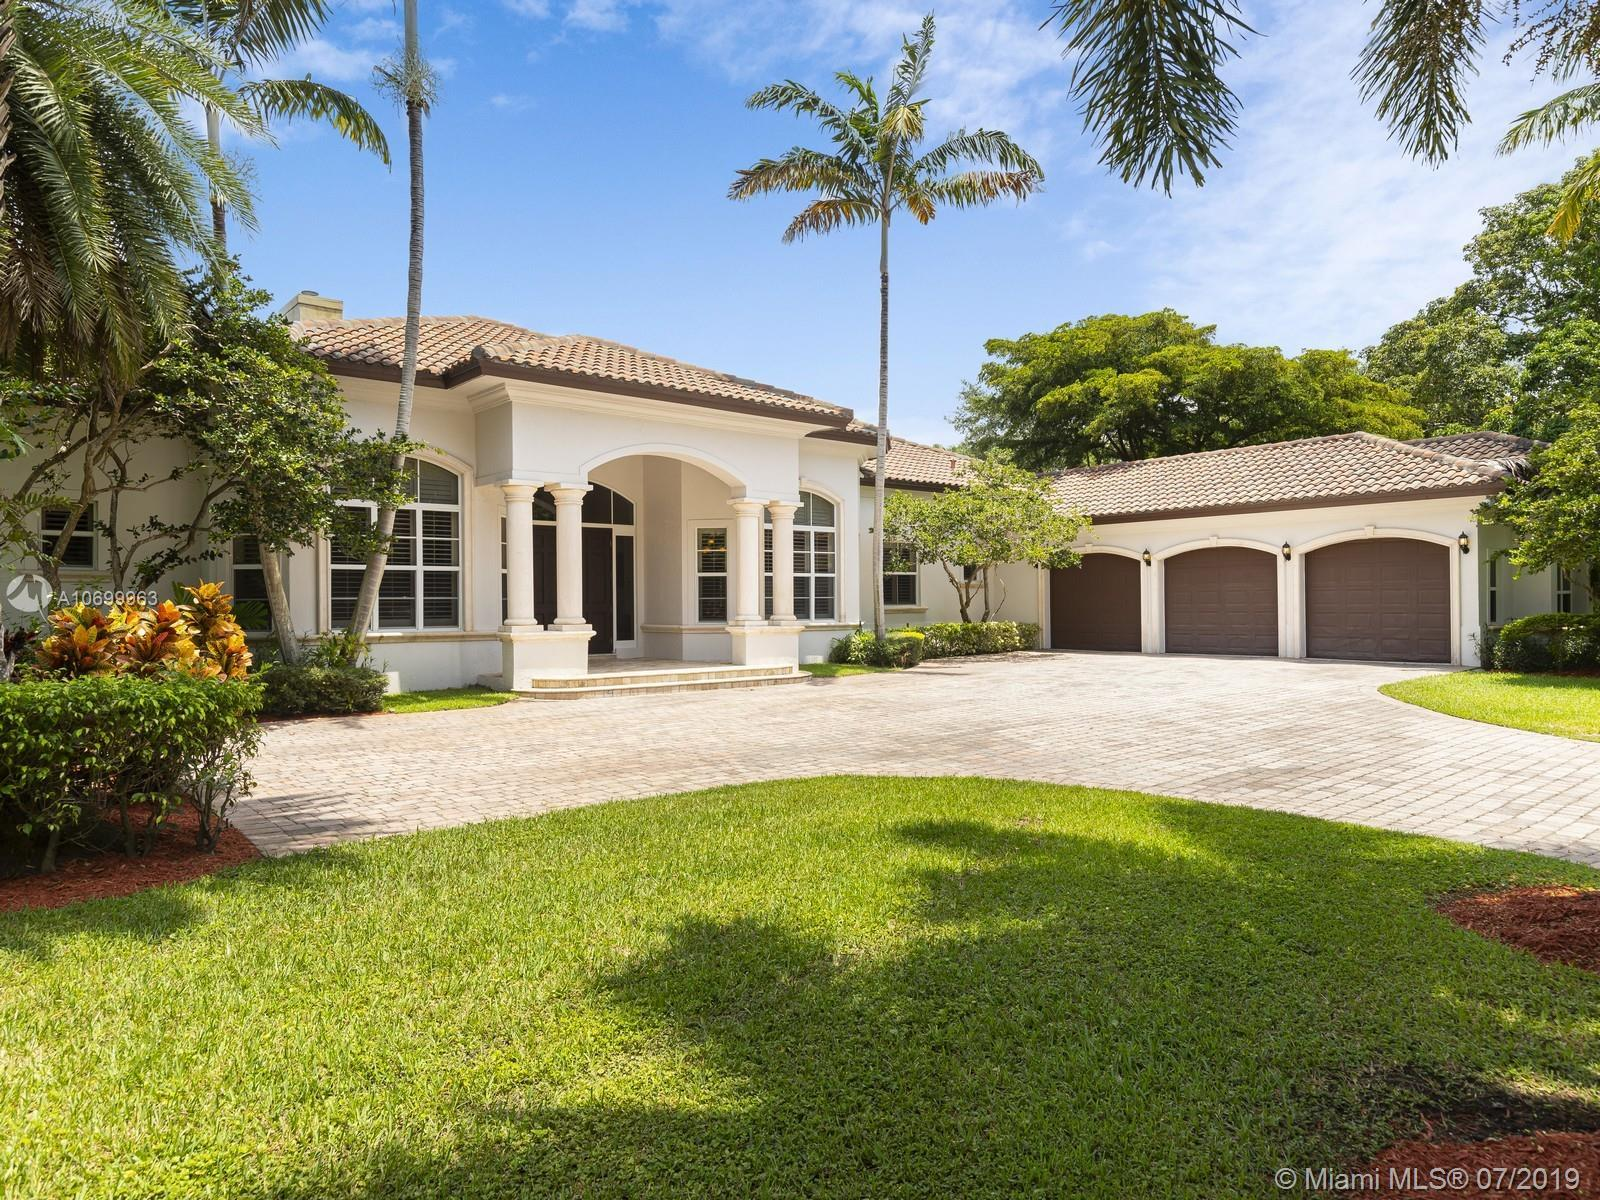 Prestigious Pinecrest Gated Estate developed by Kenner Homes. This home offers a spacious single-sto